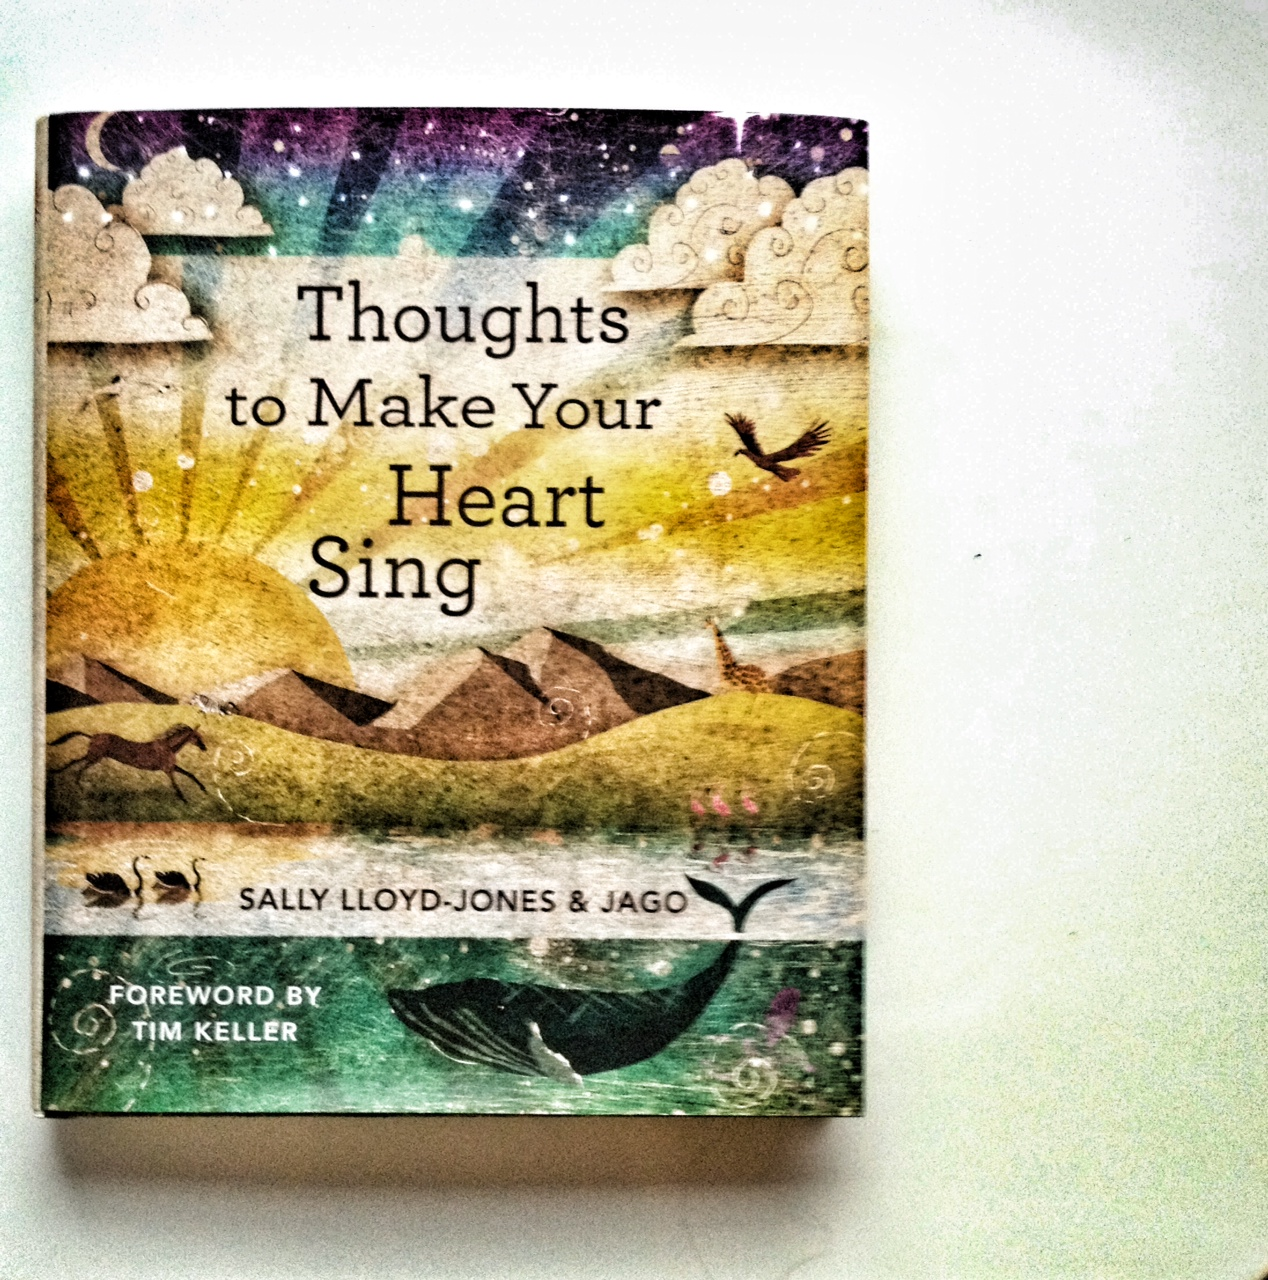 Thoughts to Make Your Heart Sing, Devotional books for children, family devotions, sally lloyd jones, jago